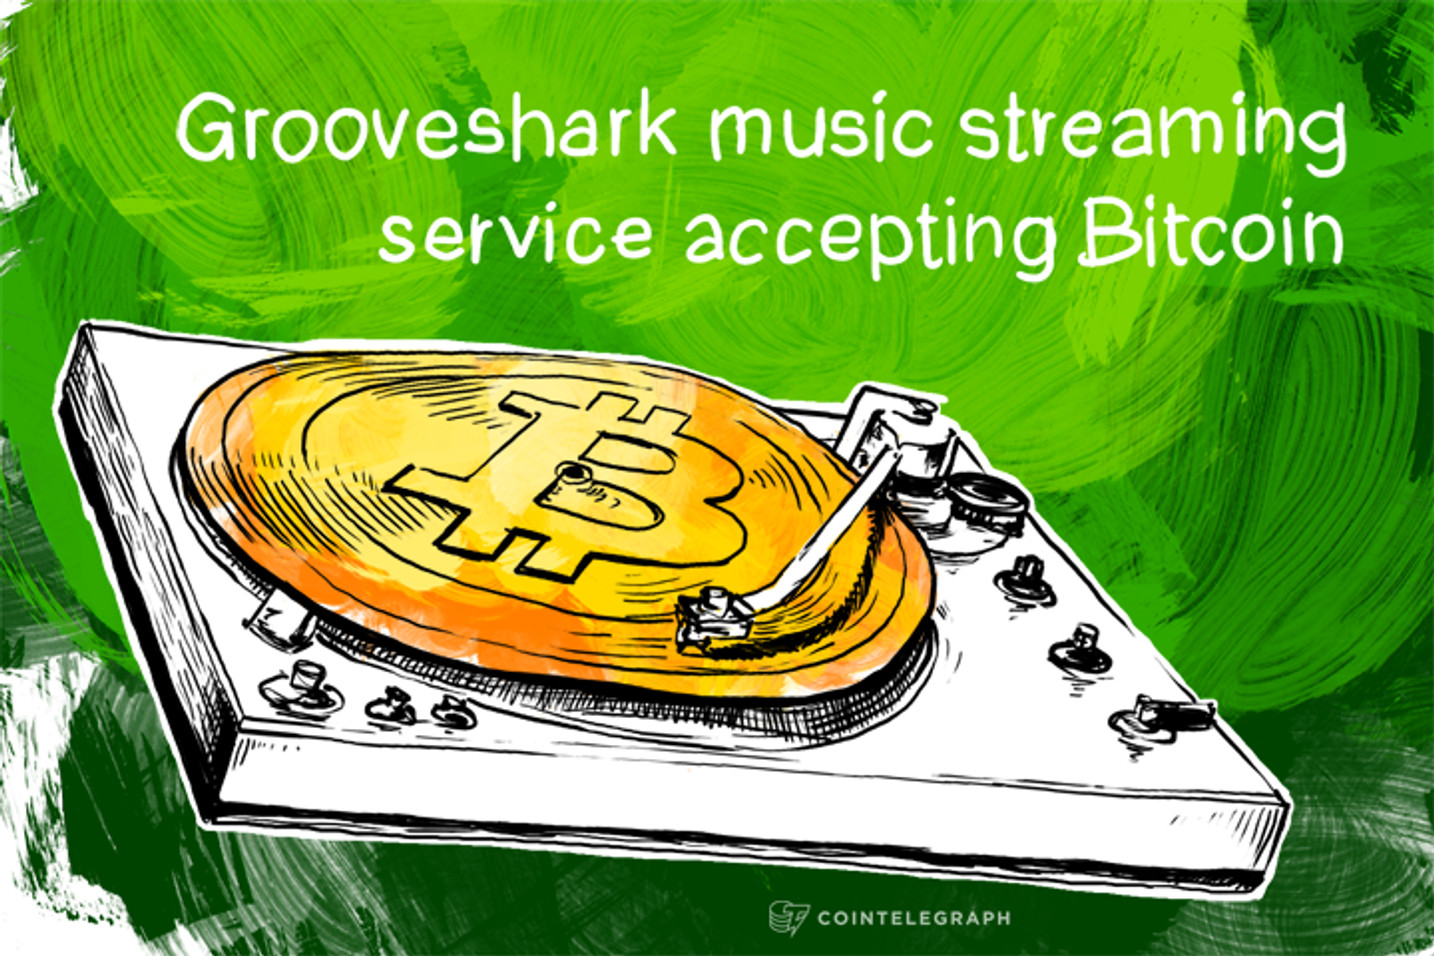 Grooveshark music streaming service accepting Bitcoin